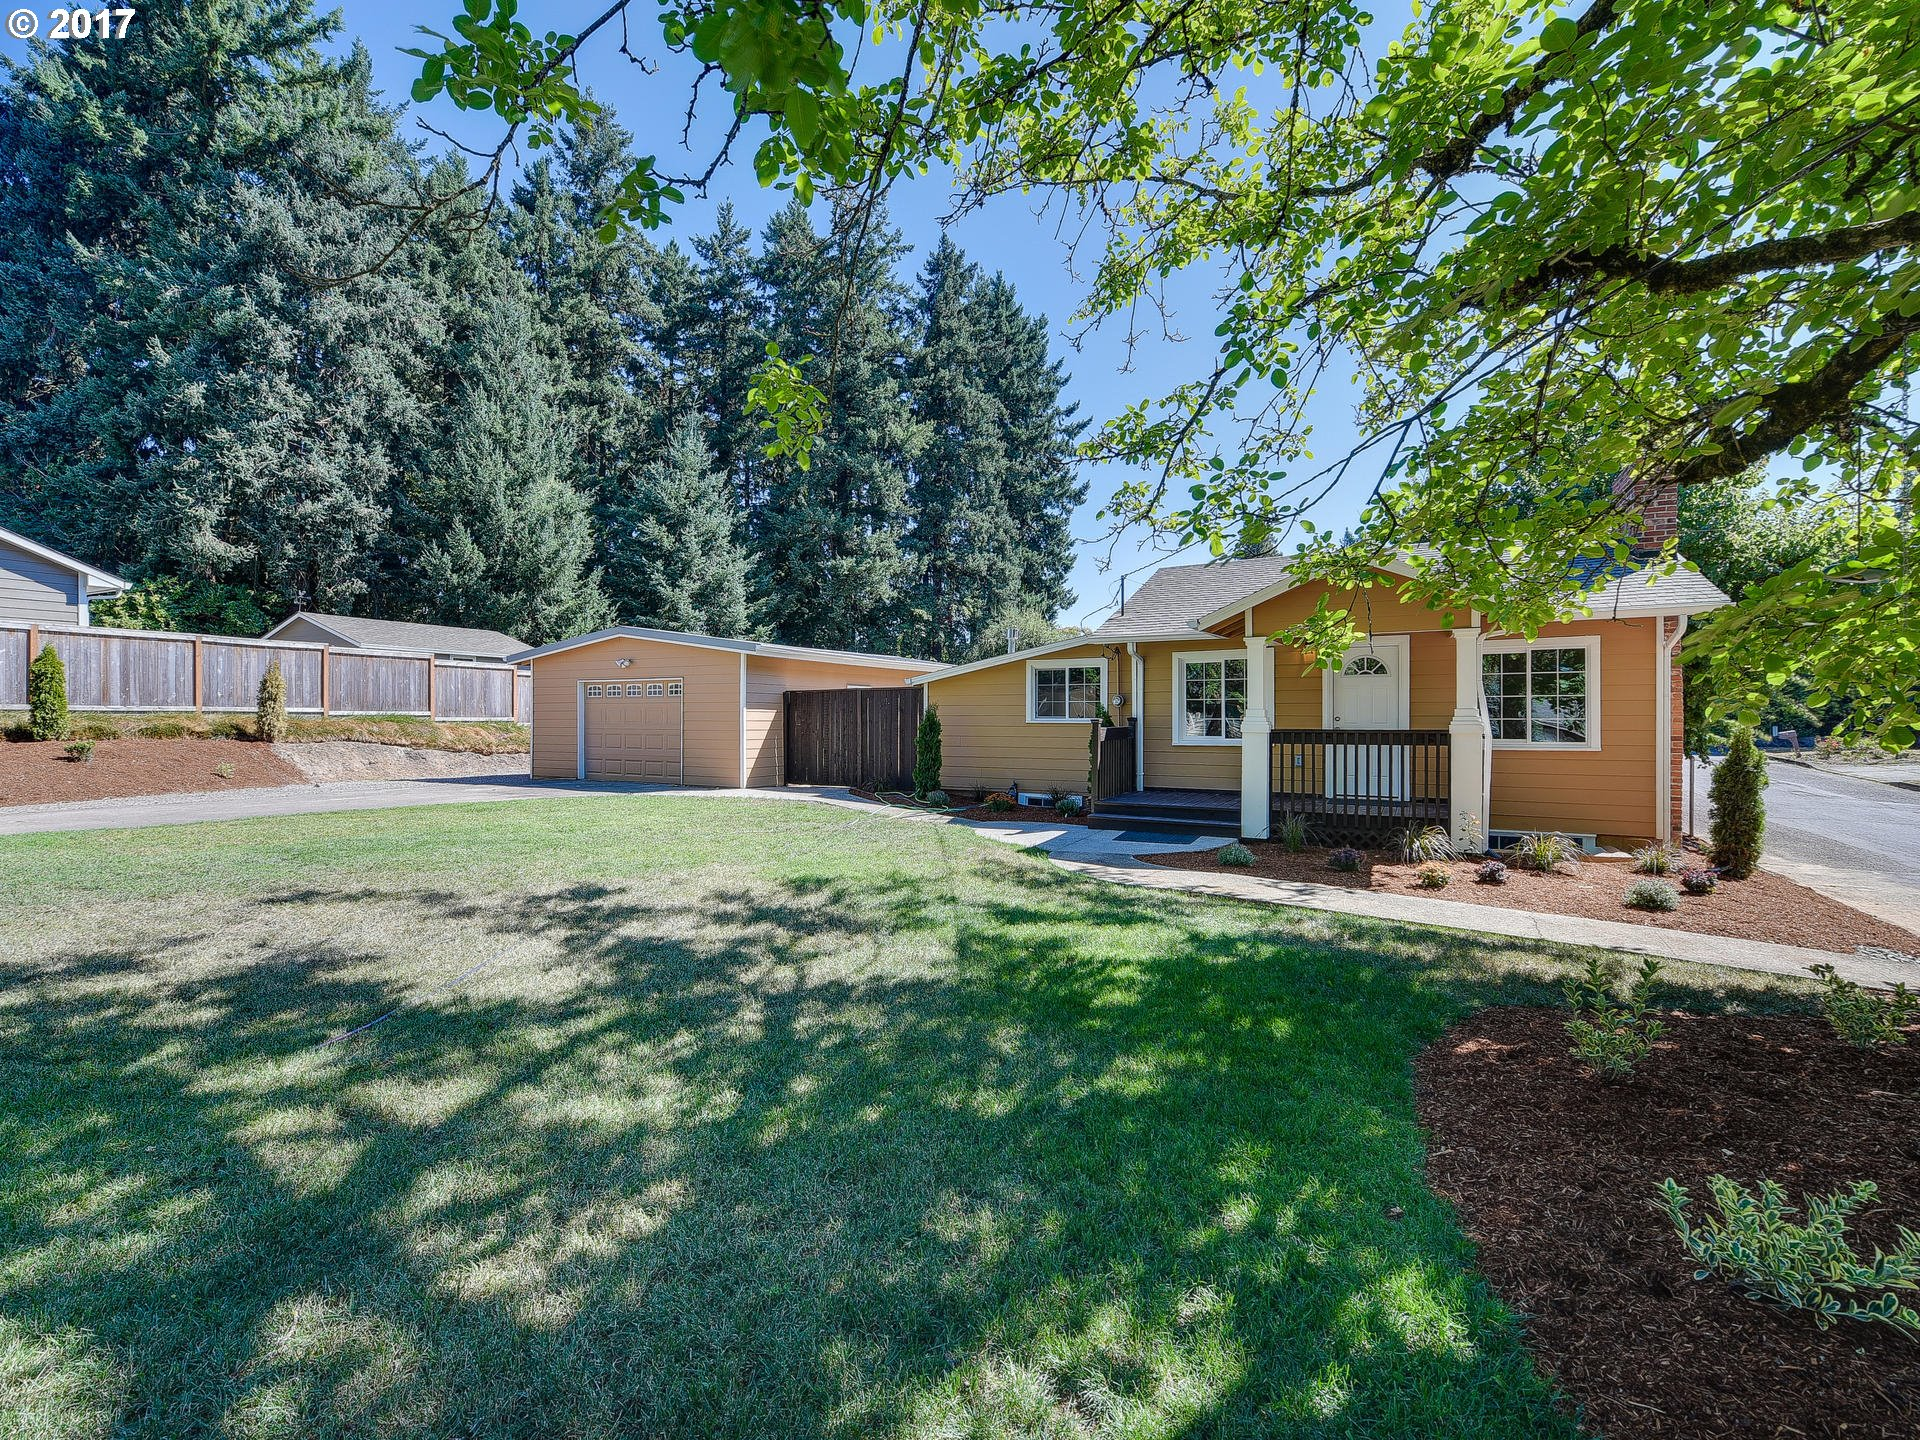 10592 SE 55TH AVE, Milwaukie, OR 97222